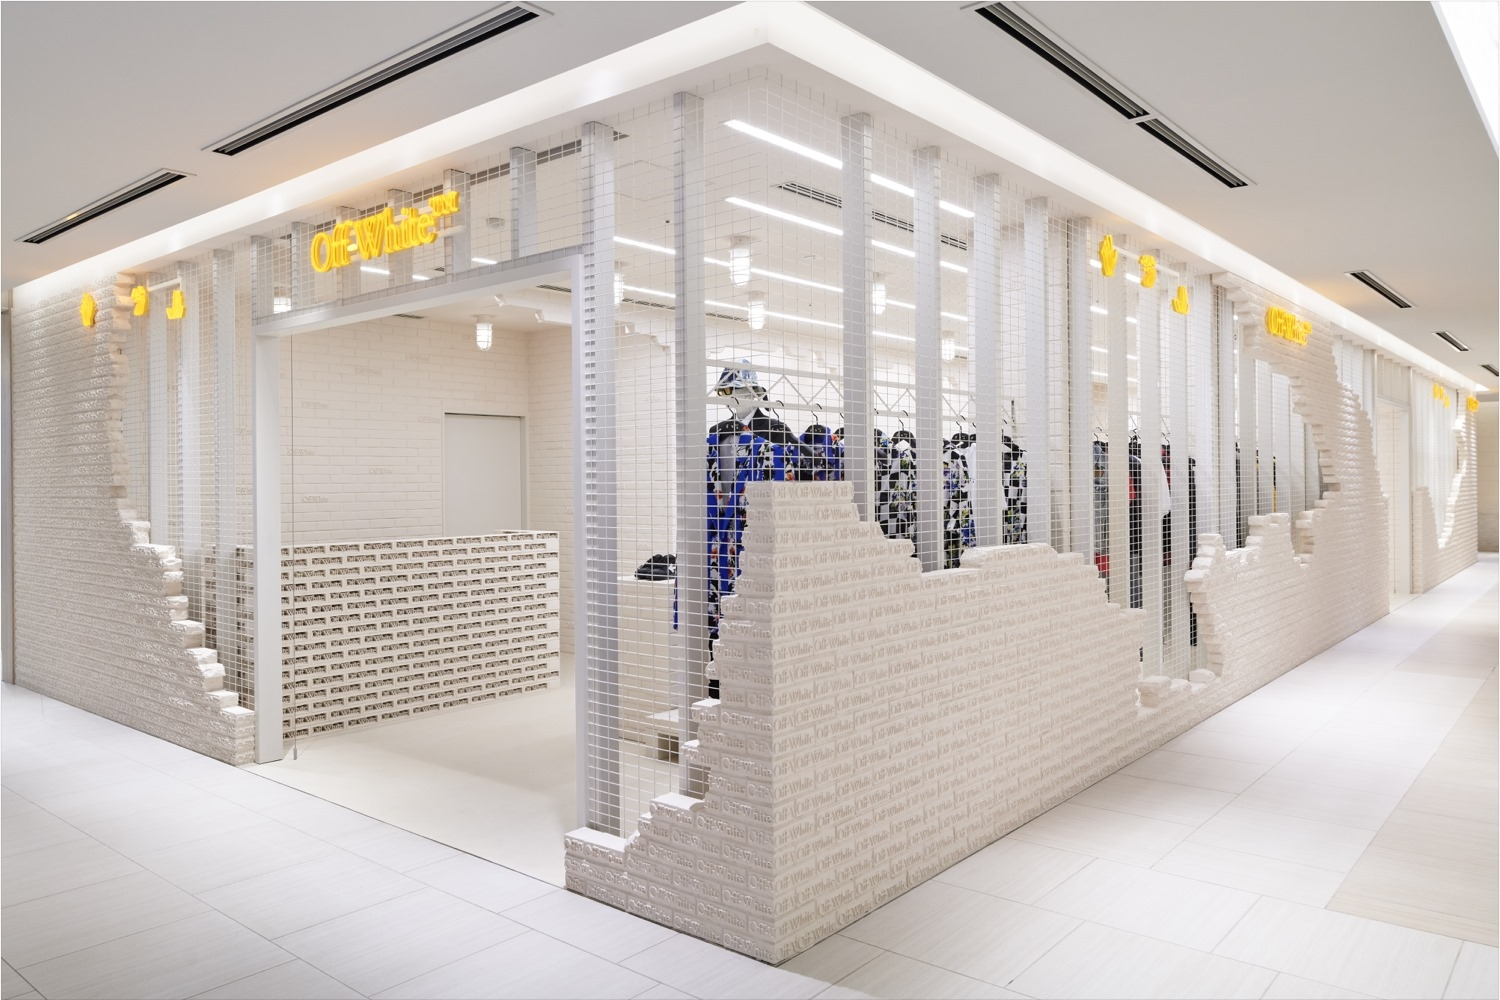 Off-White store in Tokyo at Ginza by SITE studio